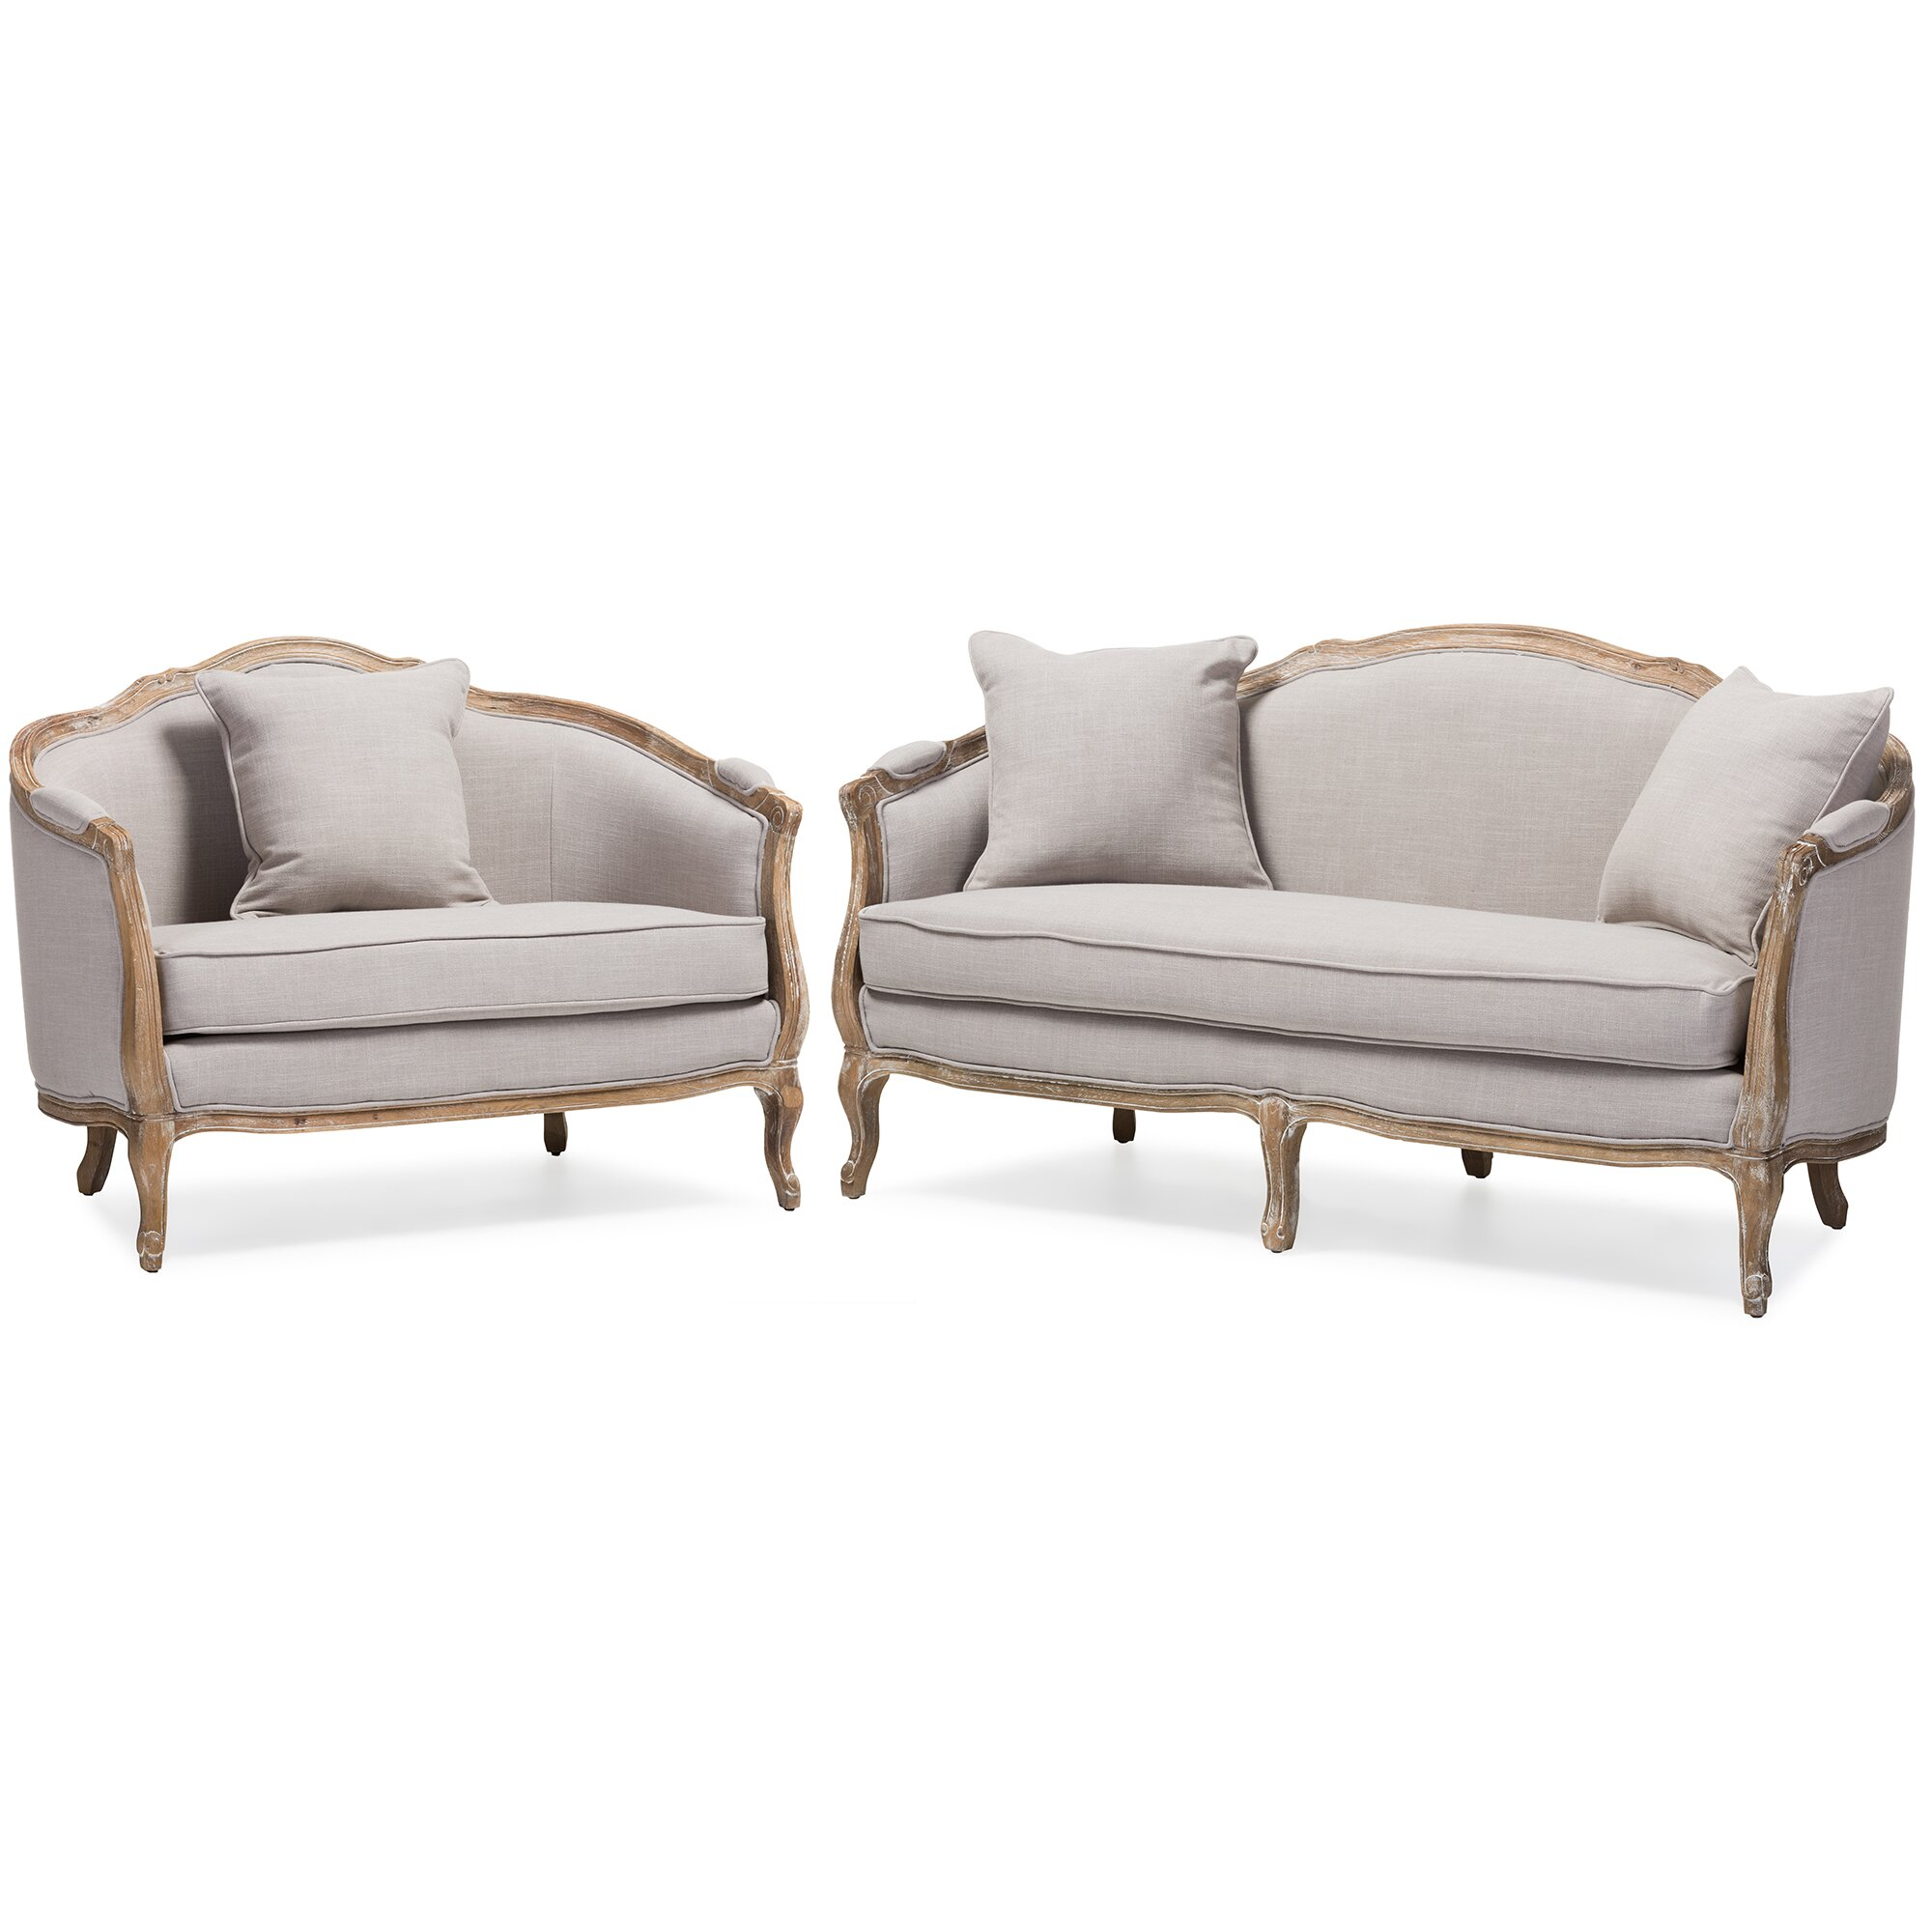 Wholesale interiors baxton studio benito sofa and loveseat for Whole living room furniture sets